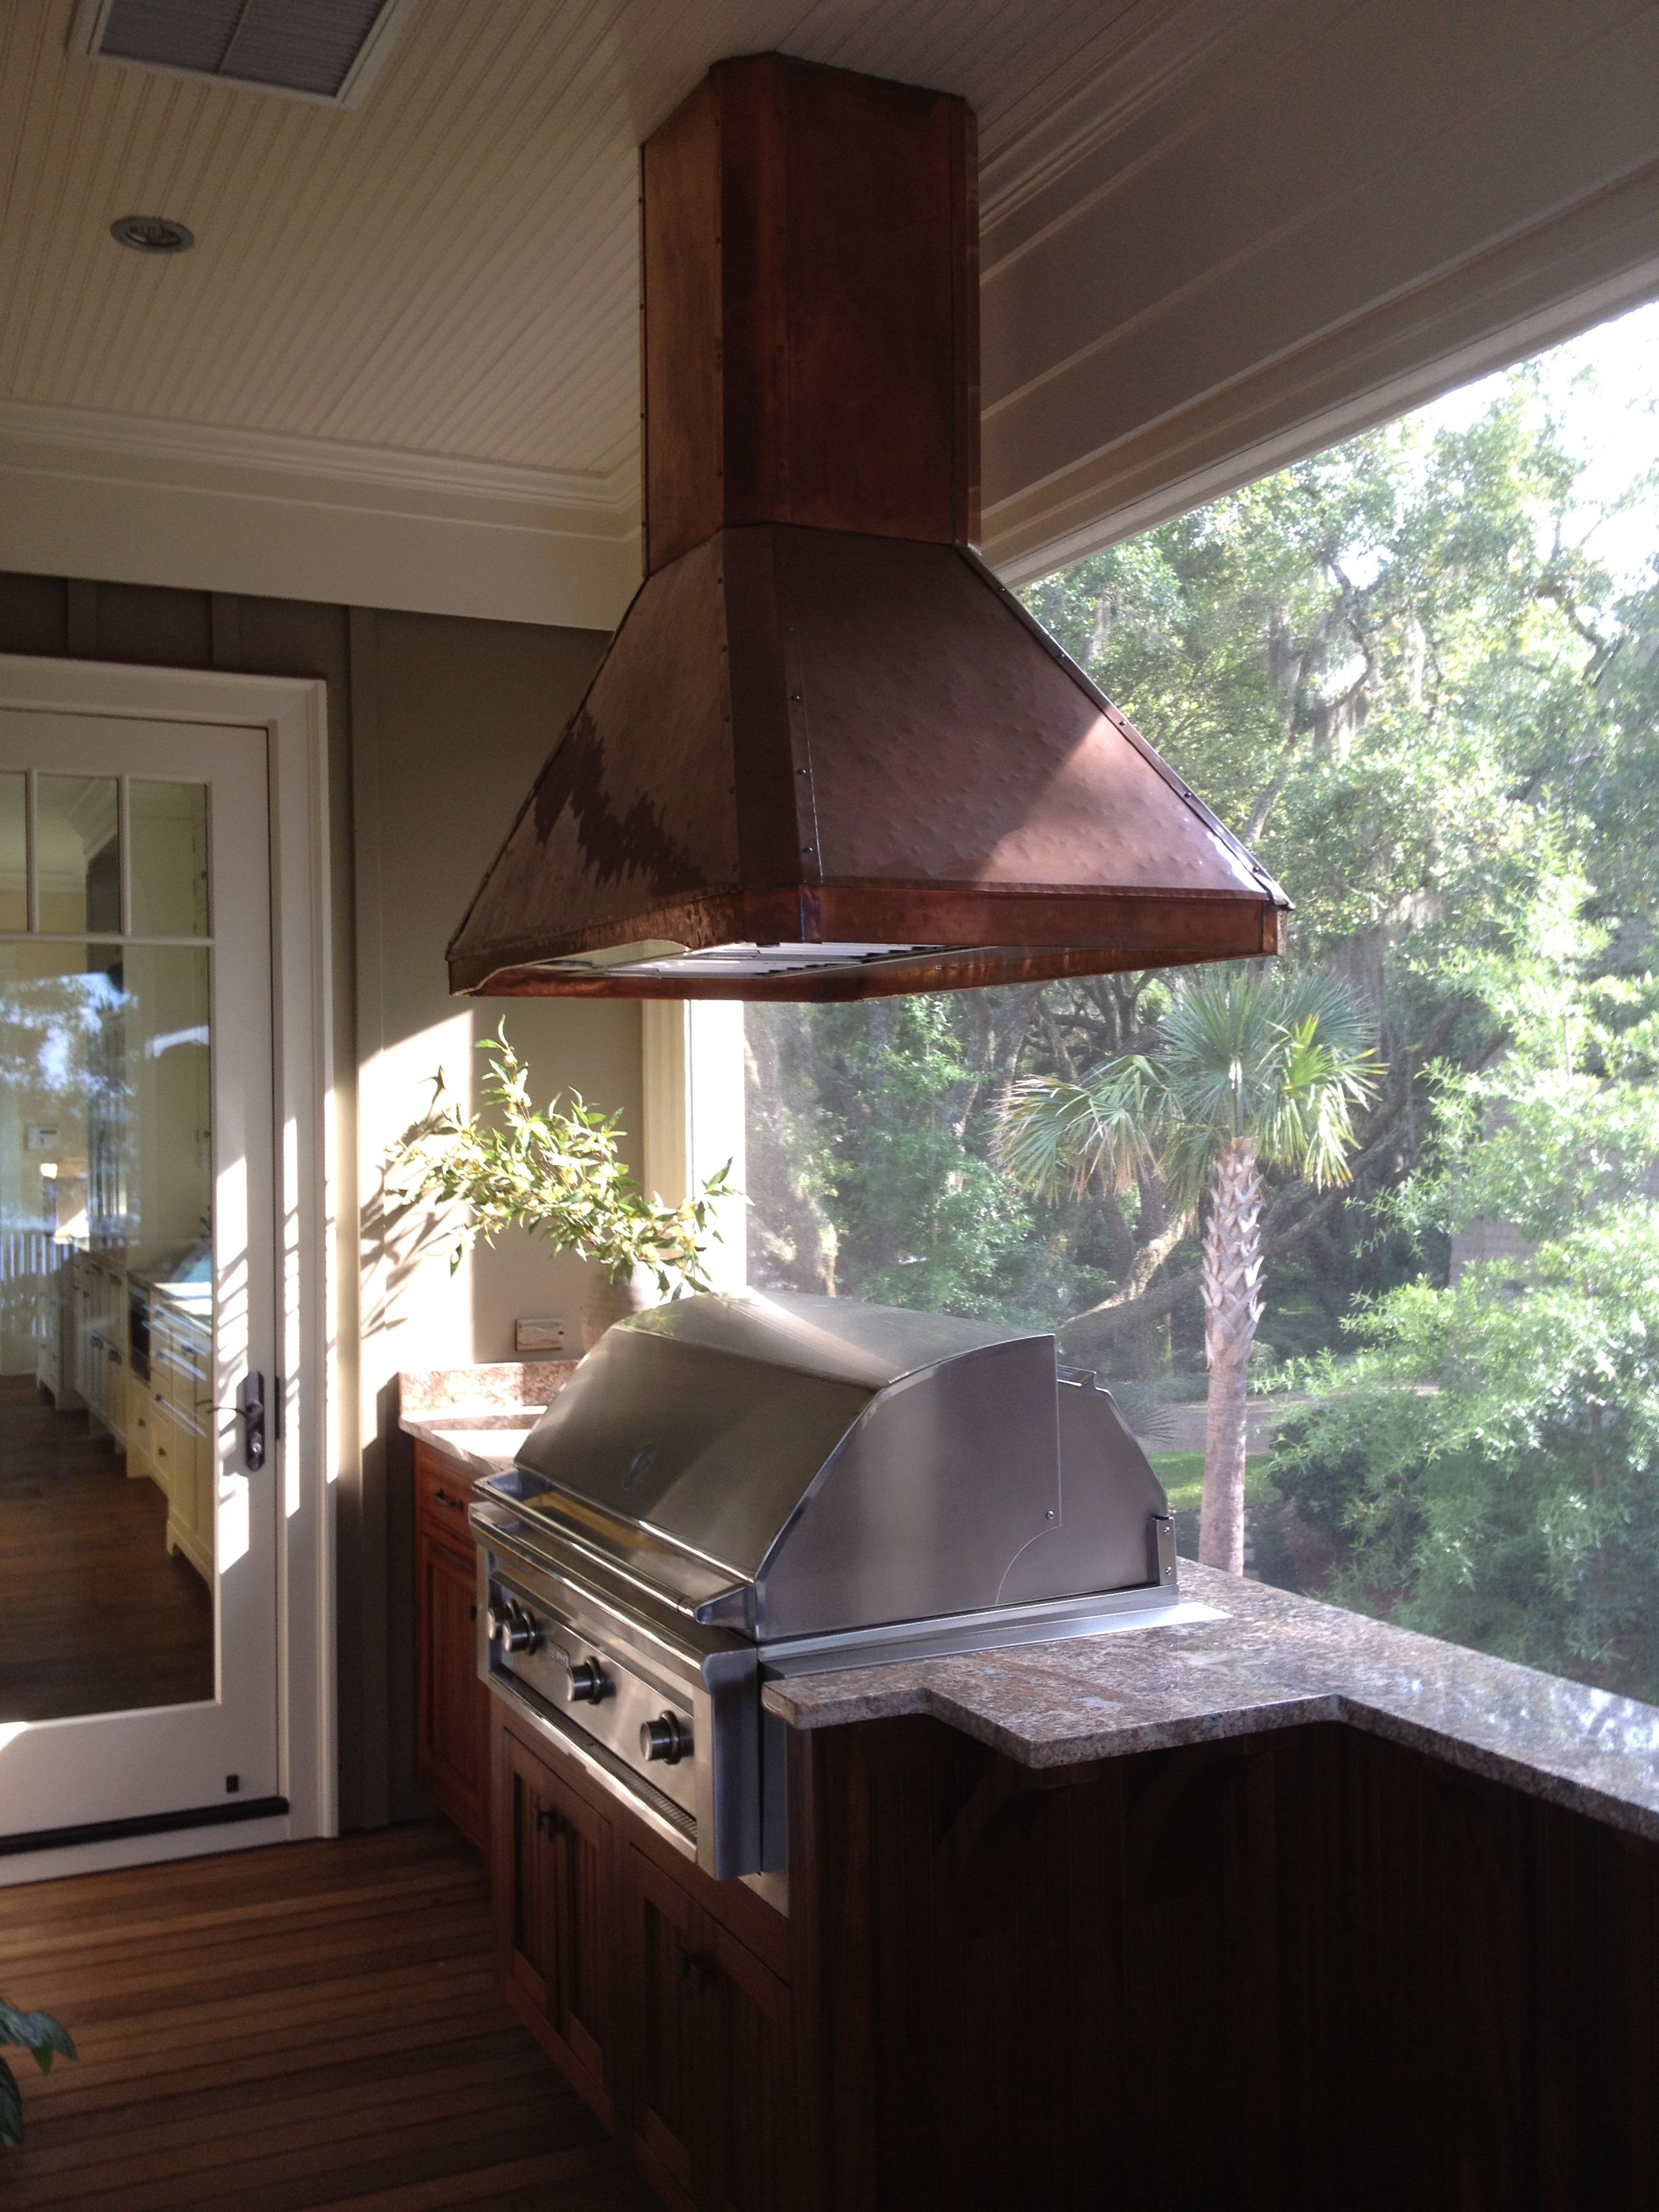 Outdoor Kitchen Exhaust Hoods 4 Piece Appliance Packages Copper Hood Vent Architectural Metal Work In 2019 Patio Kitchens